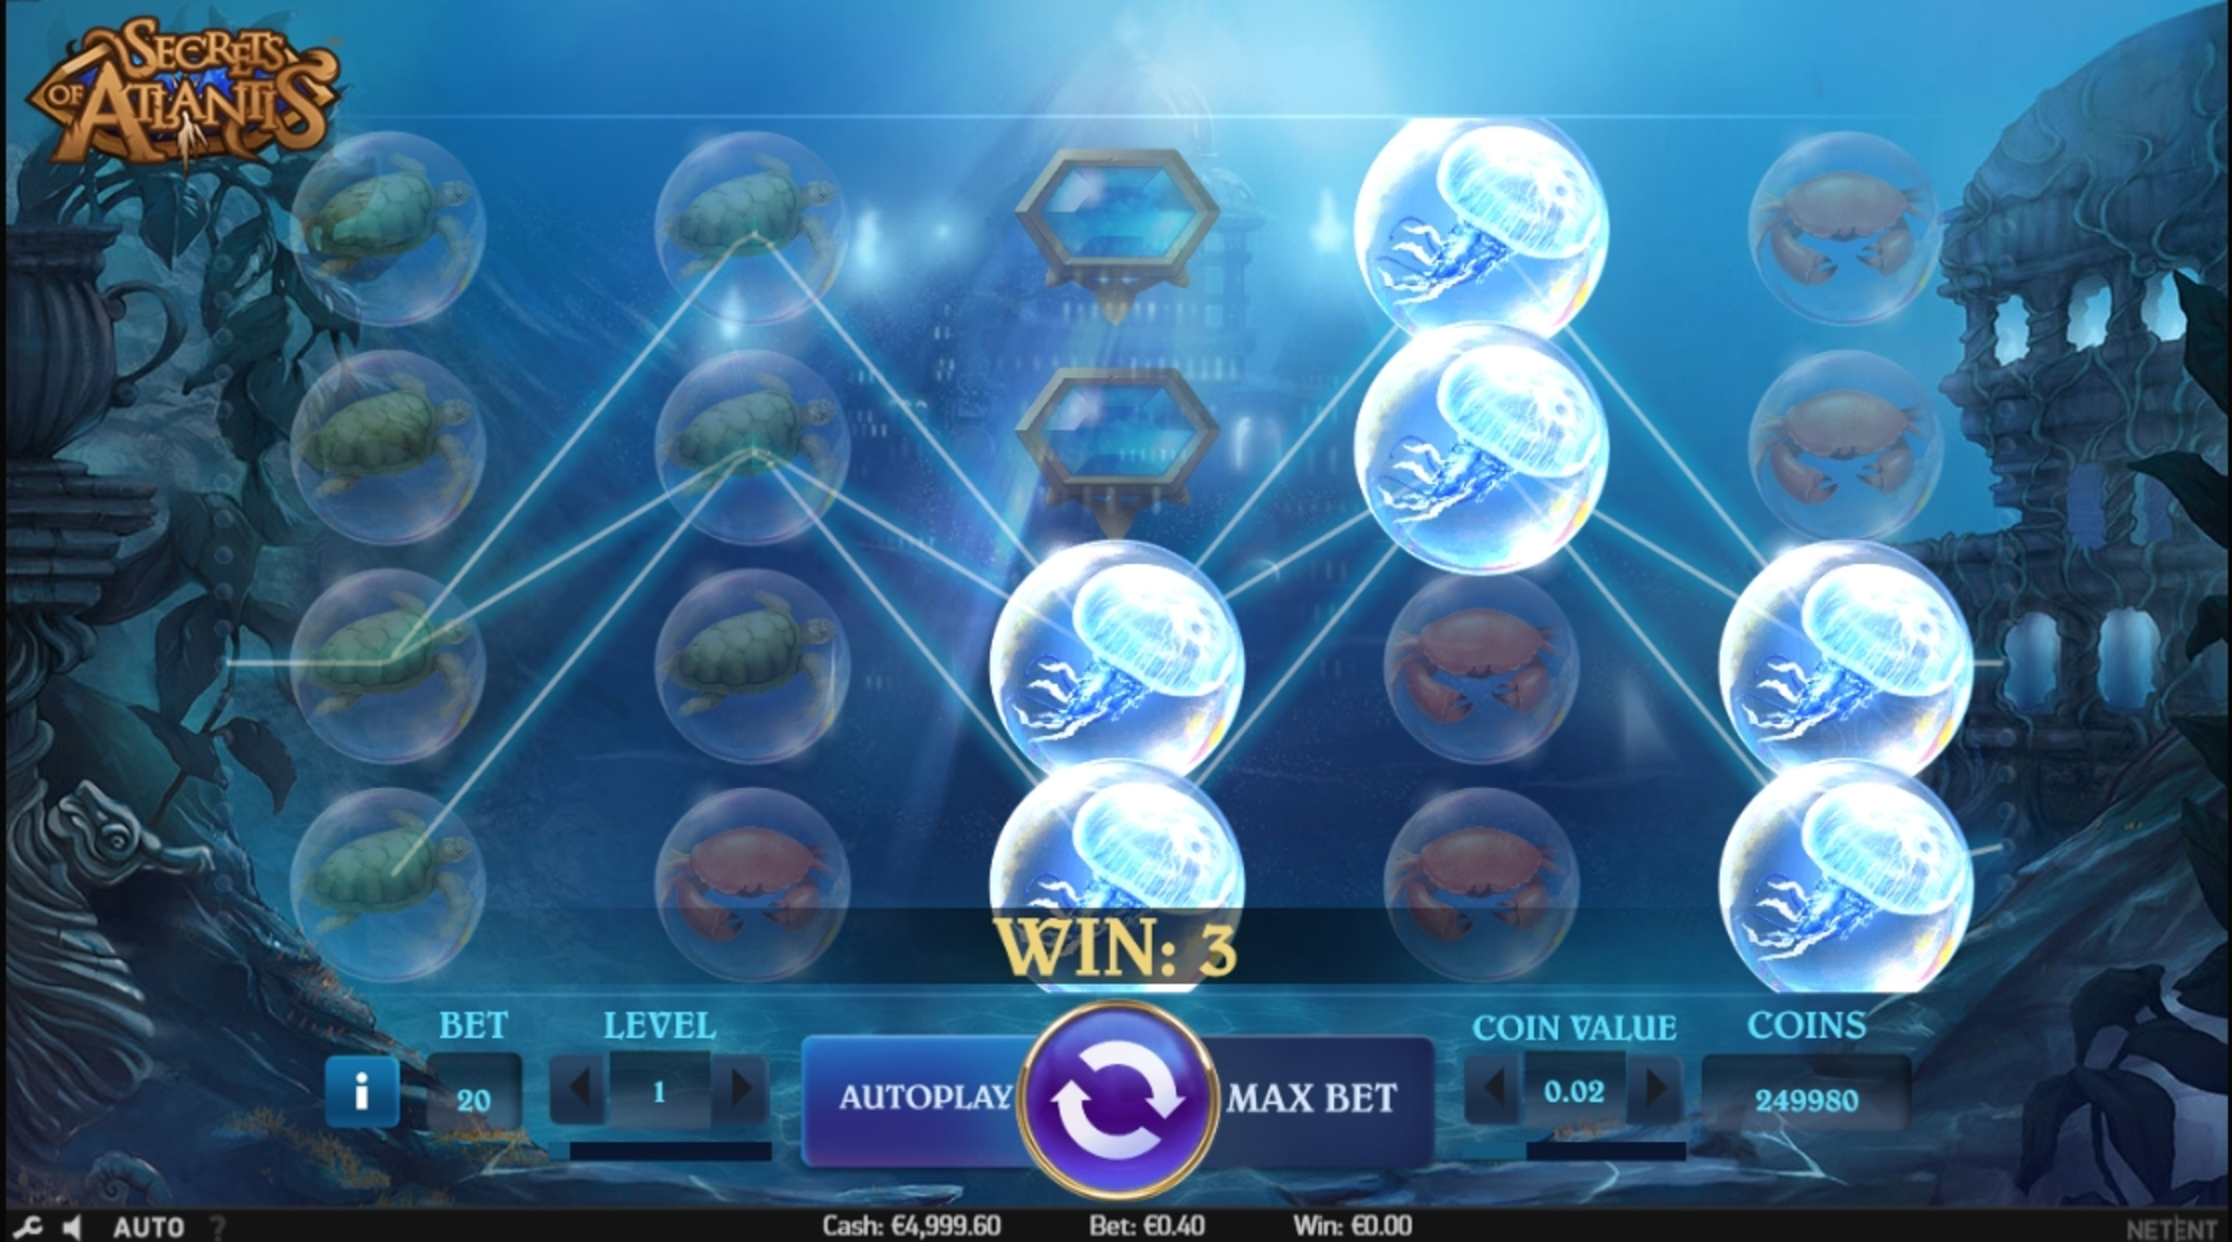 Win Money in Secrets of Atlantis Free Slot Game by NetEnt